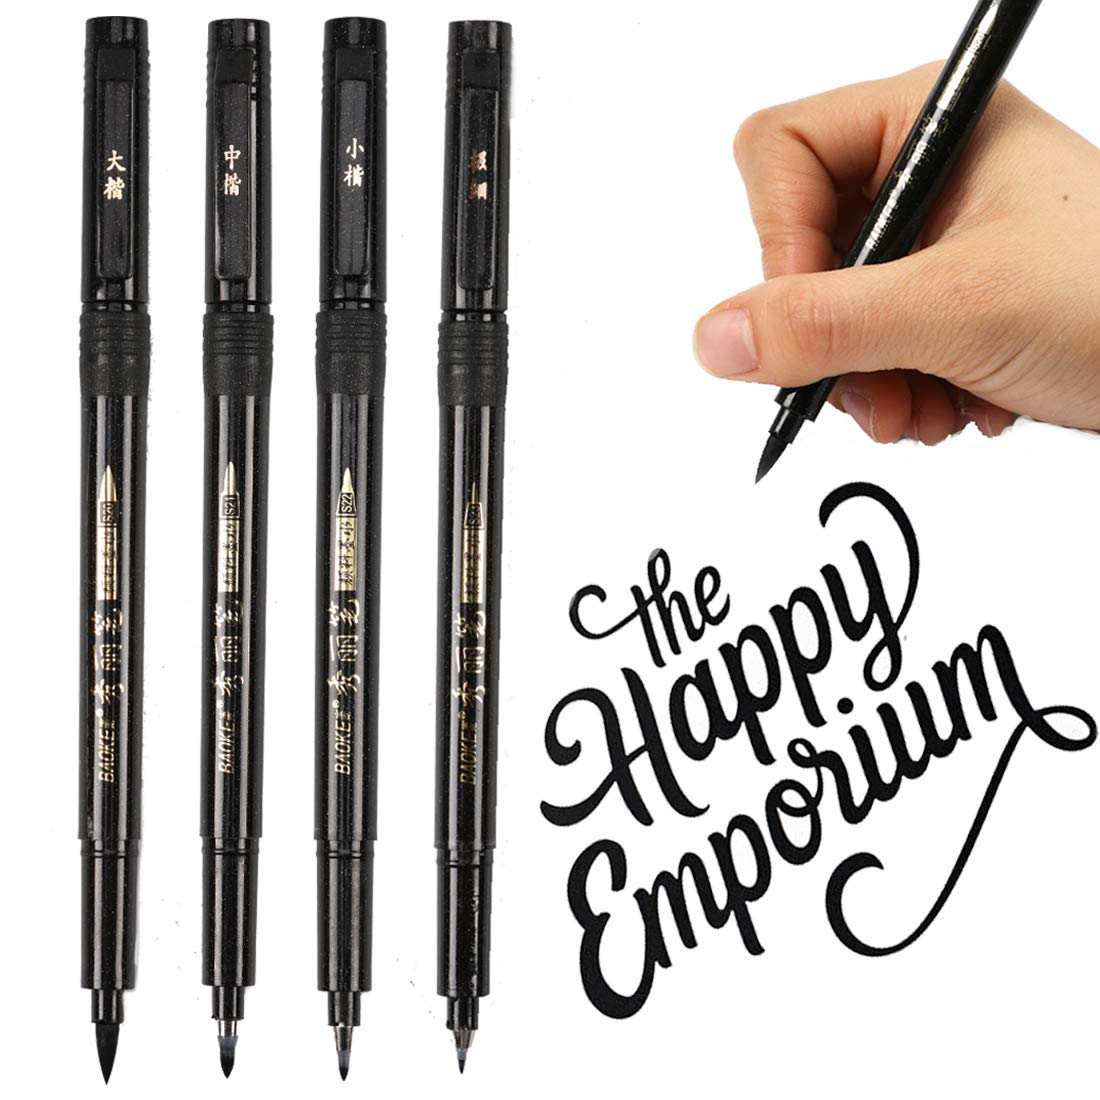 Refillable Brush Marker Pens for Hand Lettering - 4 Size Black Calligraphy Ink Pen for Beginners Writing, Signature, Illustration, Design by BOXUN (Image #8)